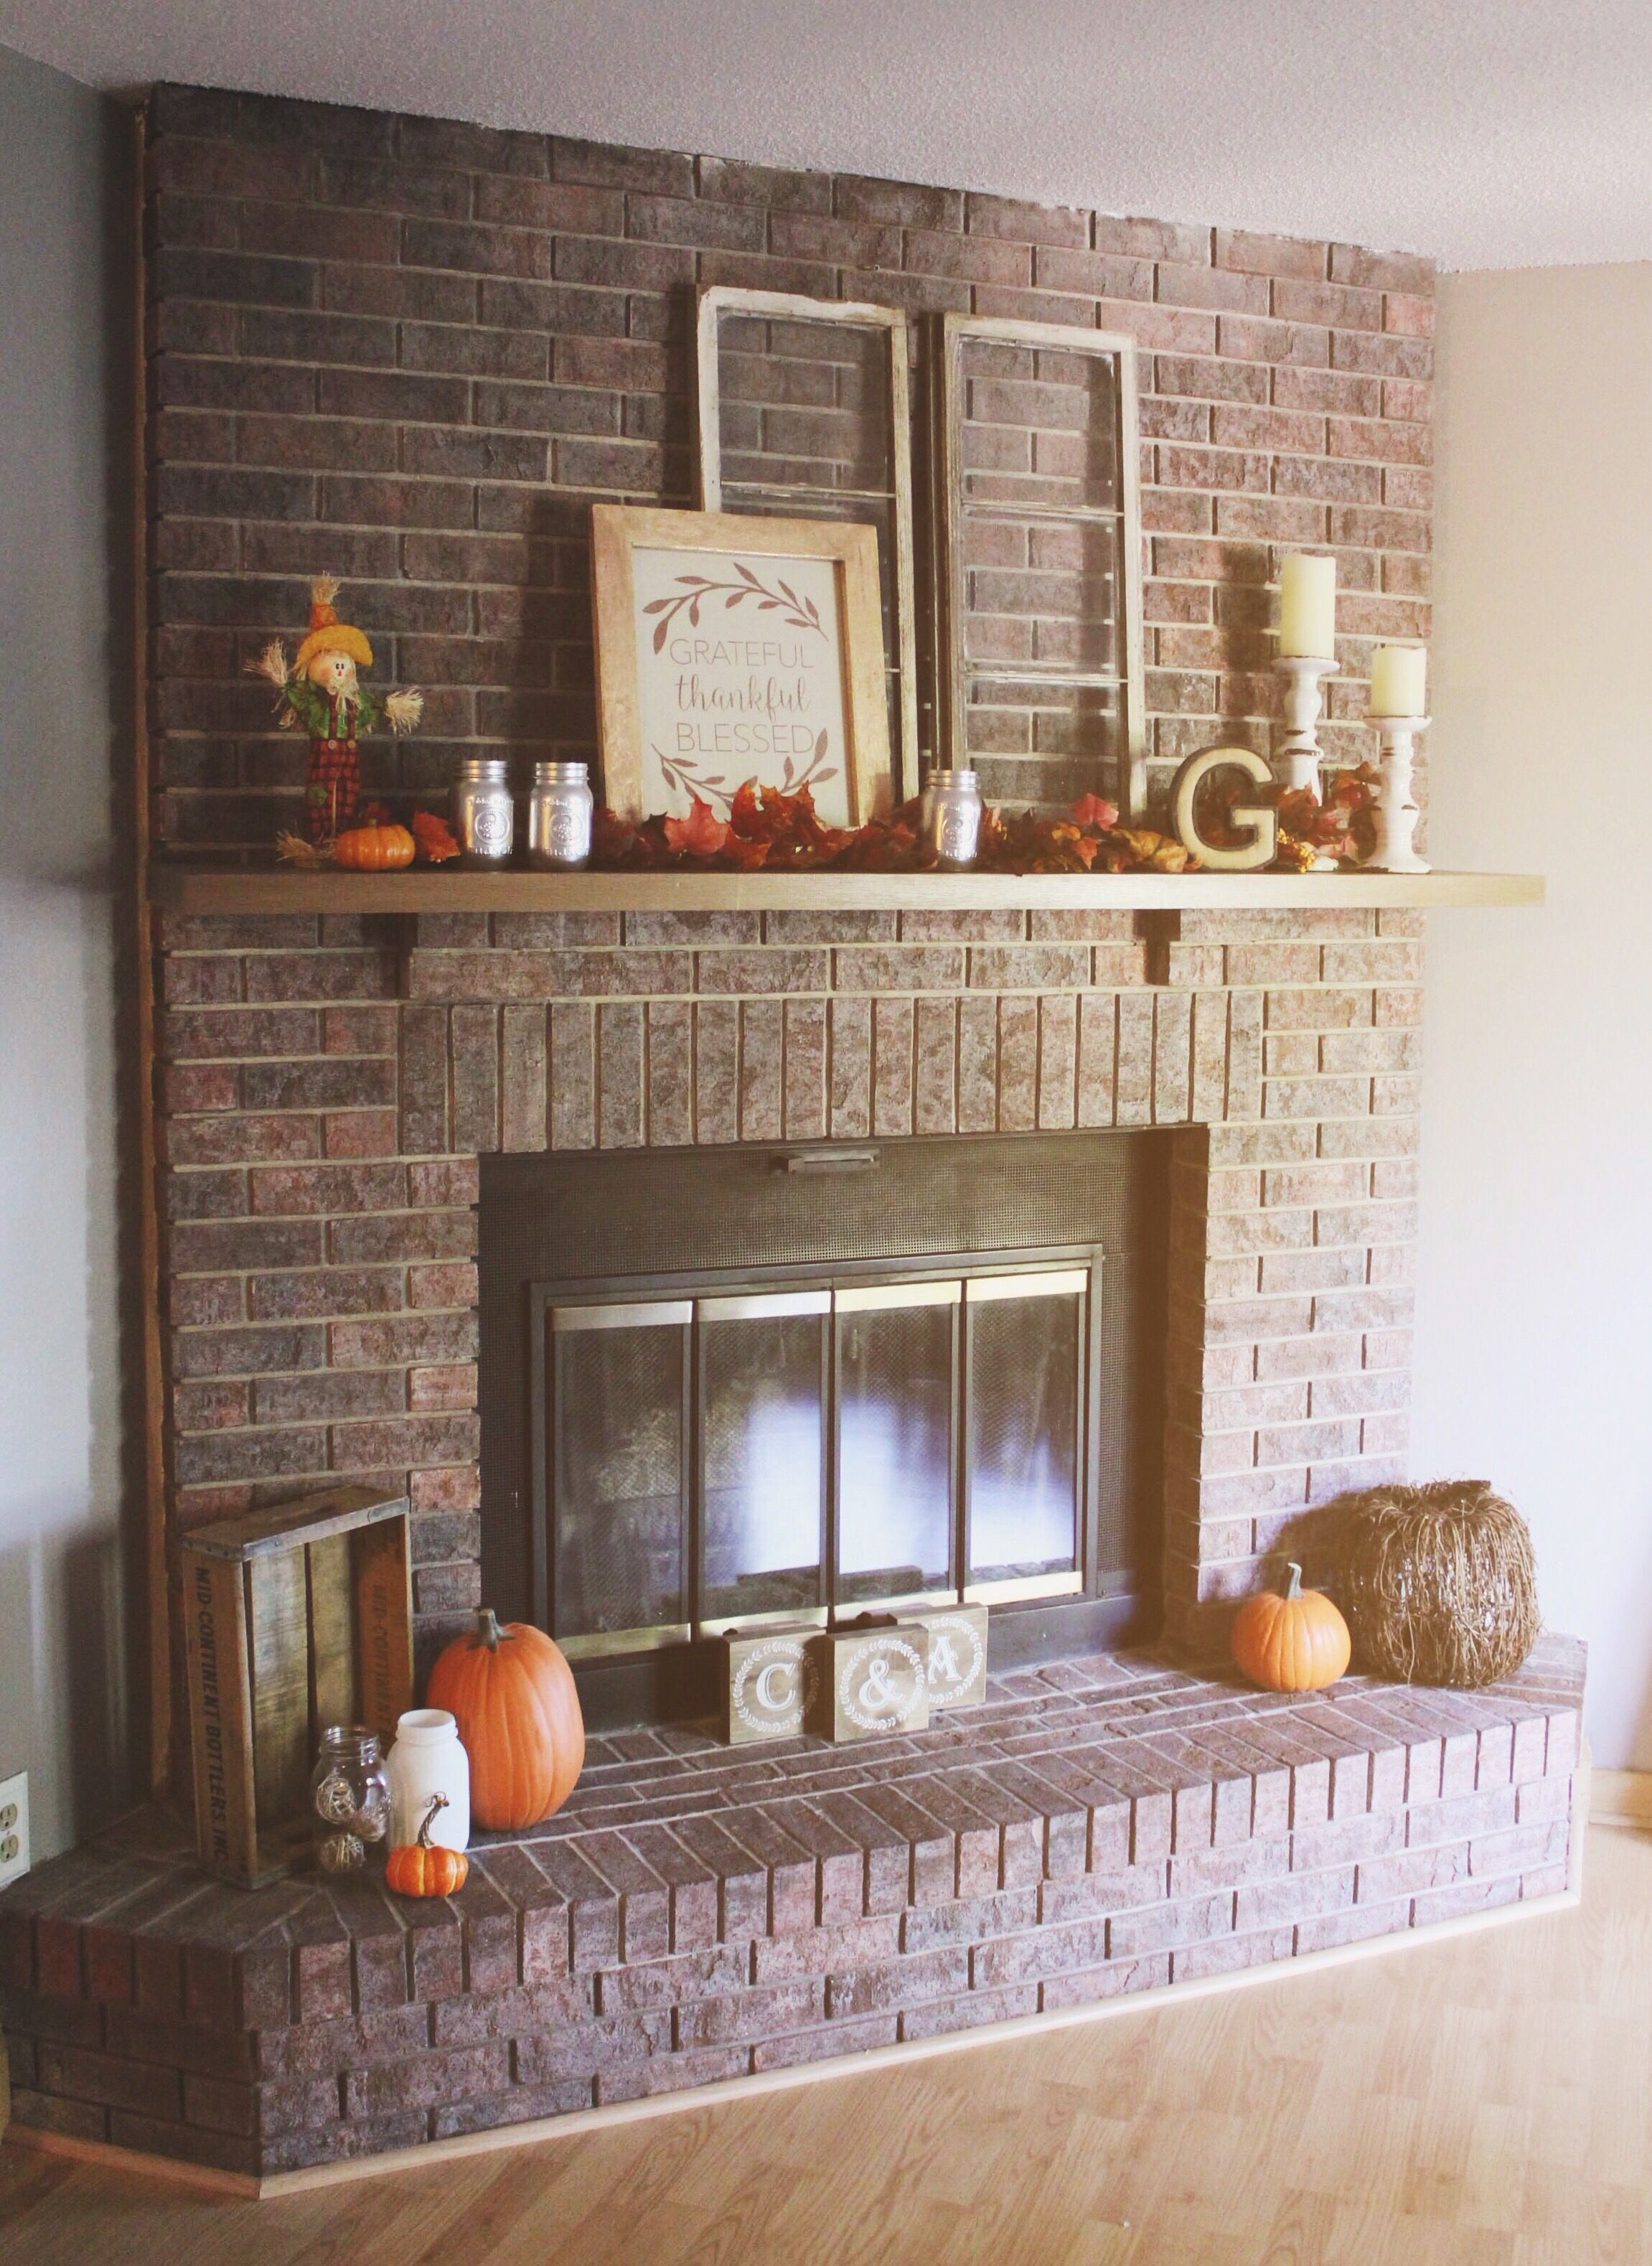 19  Best Corner Fireplace Ideas For Your Home   Home Sweet Home     Fall Corner Fireplace Decor Ideas   corner electric fireplace  corner gas  fireplace  corner fireplace mantels  white corner electric fireplace